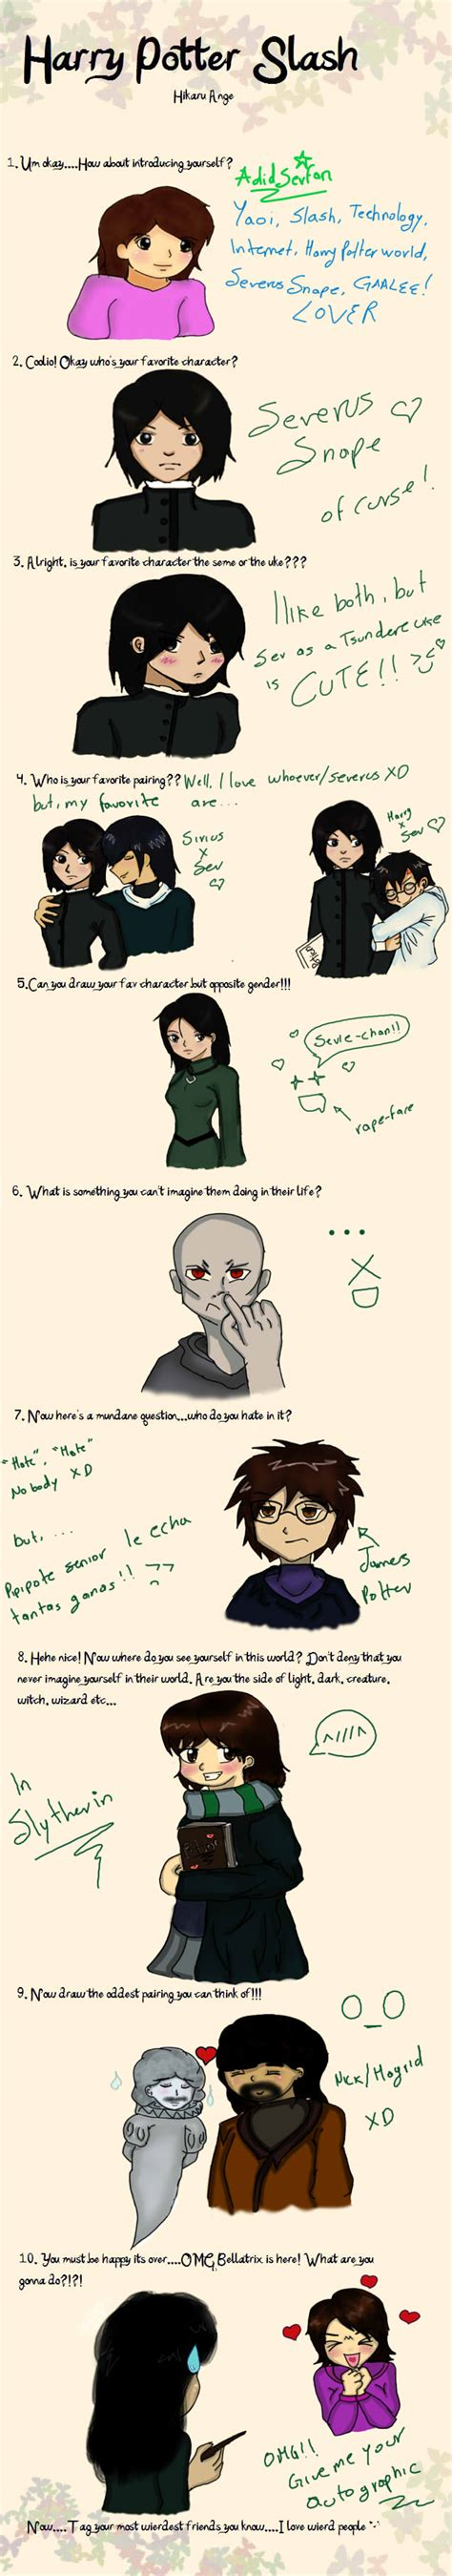 Slash Meme - harry potter slash meme by adidsevfan on deviantart